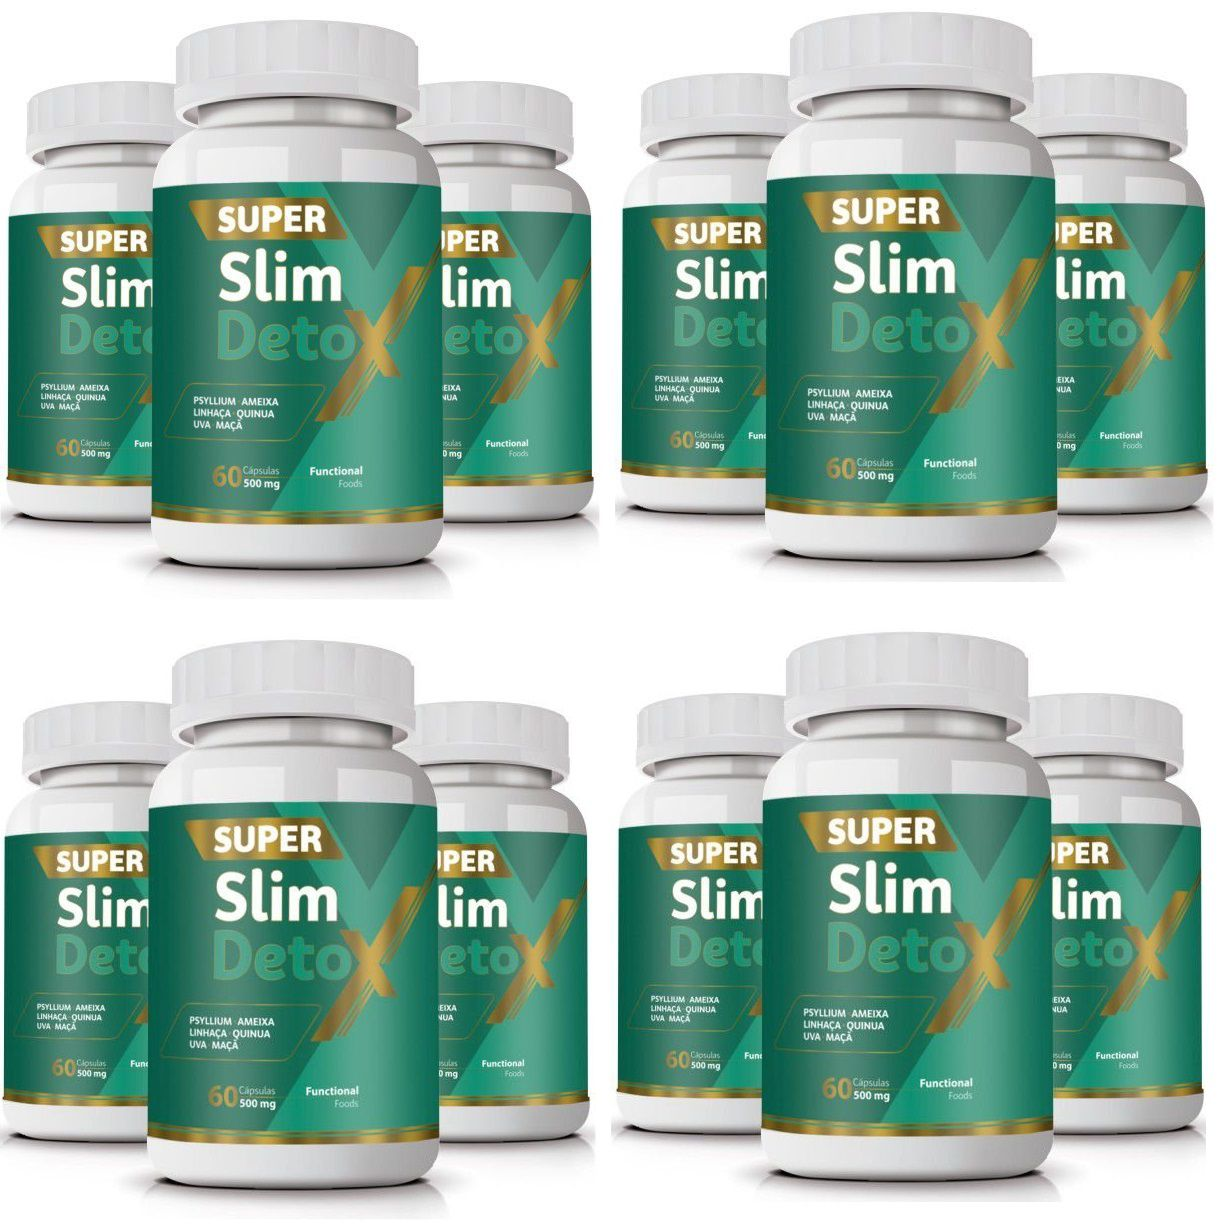 Emagrecedor Super Slim Detox Original  500mg | Atacado 12 Potes  - LA Nature